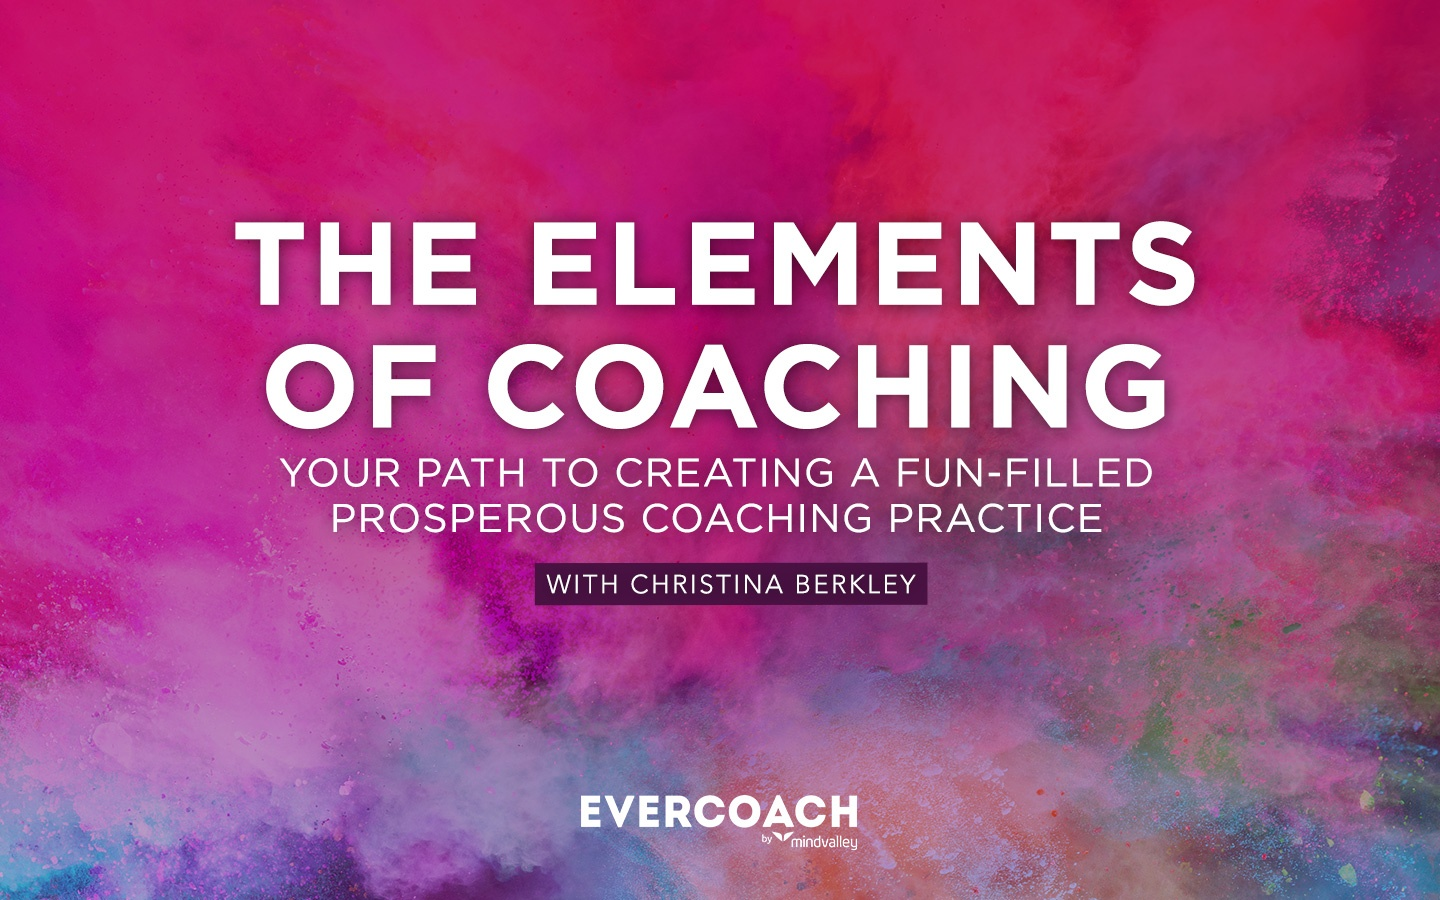 Elements: Your Path to Creating a Fun-Filled Prosperous Coaching Practice